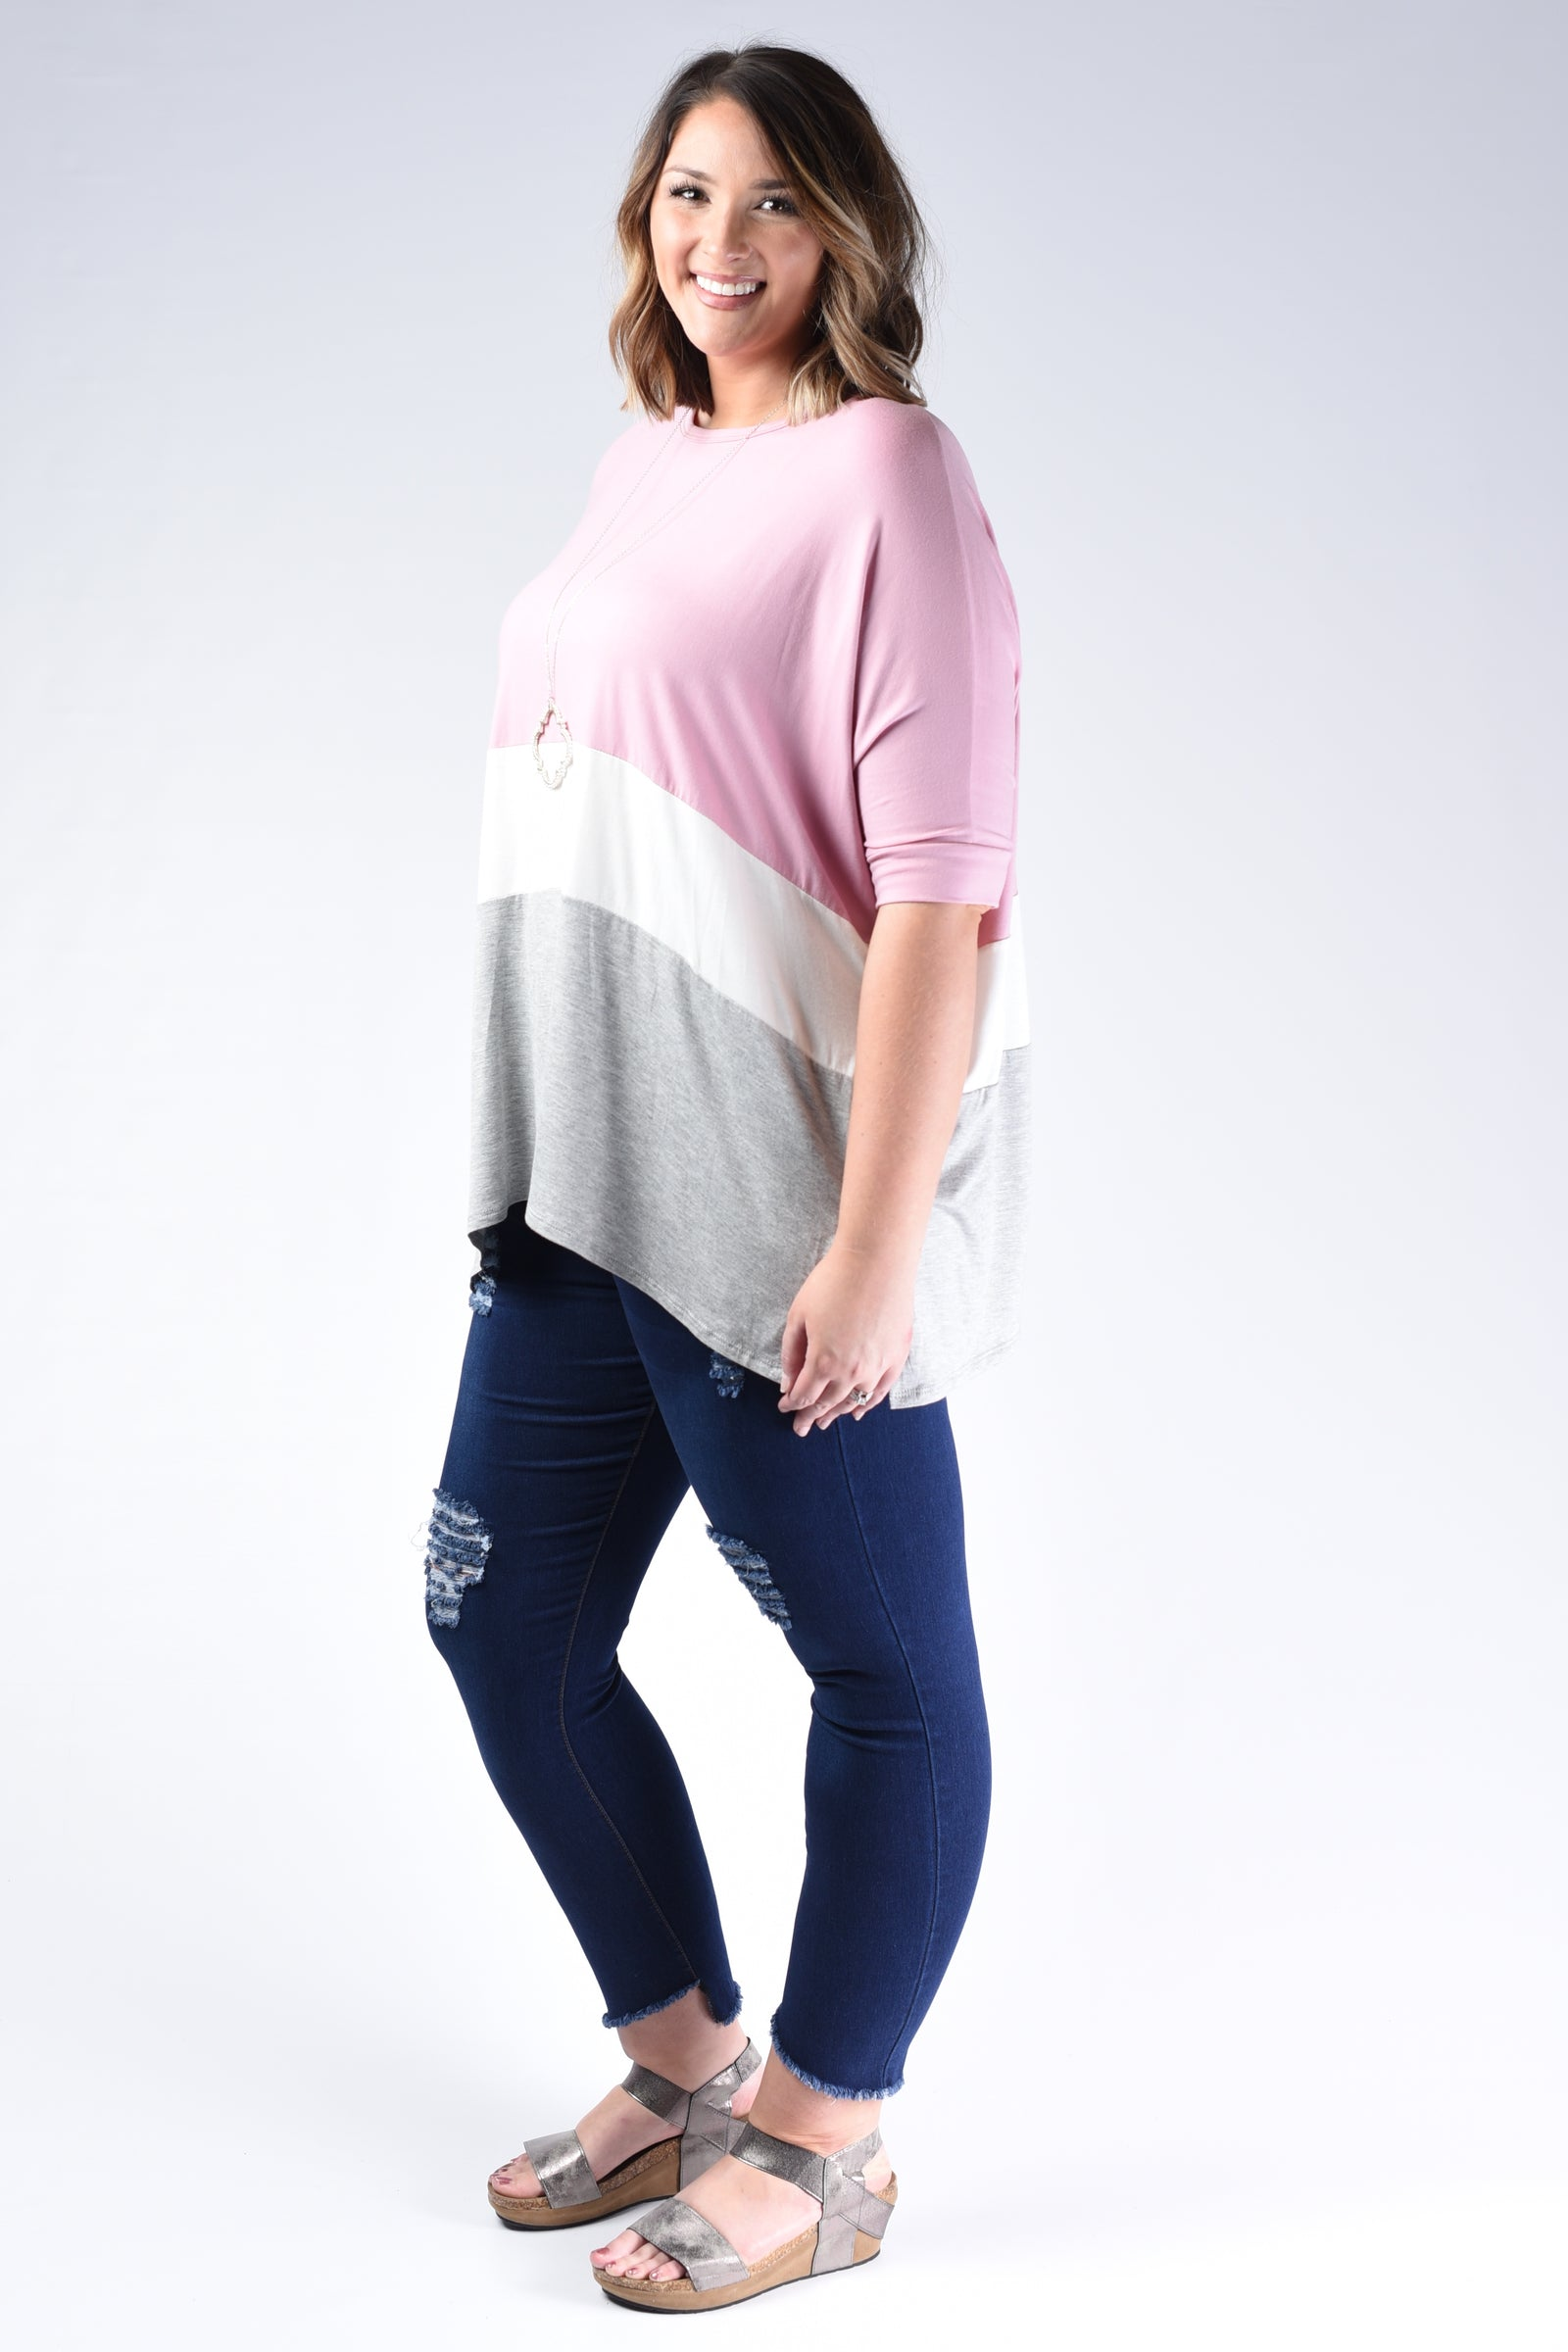 Casual Color Block Tunic Top - www.mycurvystore.com - Curvy Boutique - Plus Size